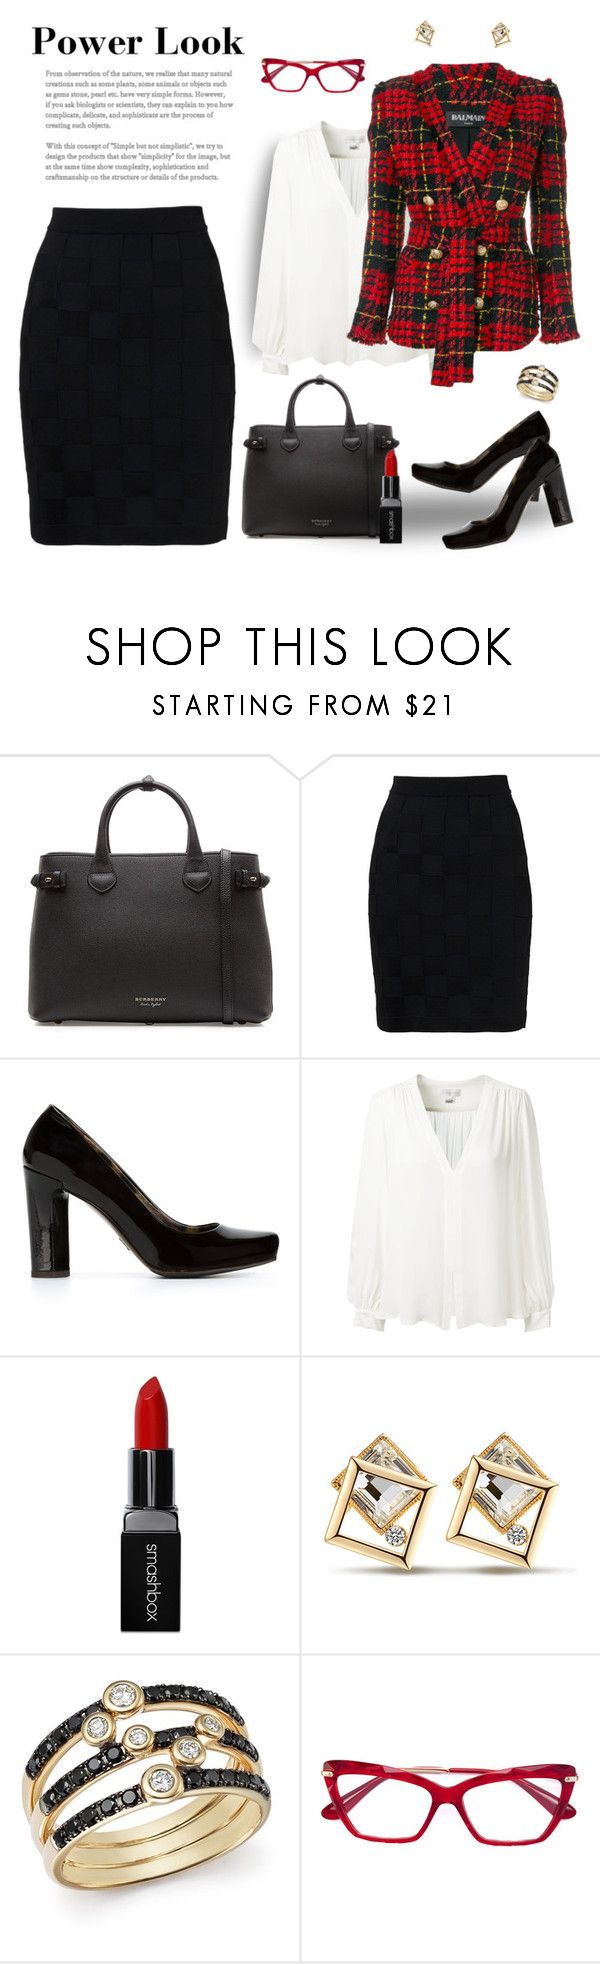 """No Wage Discrimination Here!"" by krusie ❤ liked on Polyvore featuring Burberry, Balmain, Dolce&Gabbana, Erin Fetherston, Smashbox and Bloomingdale's"